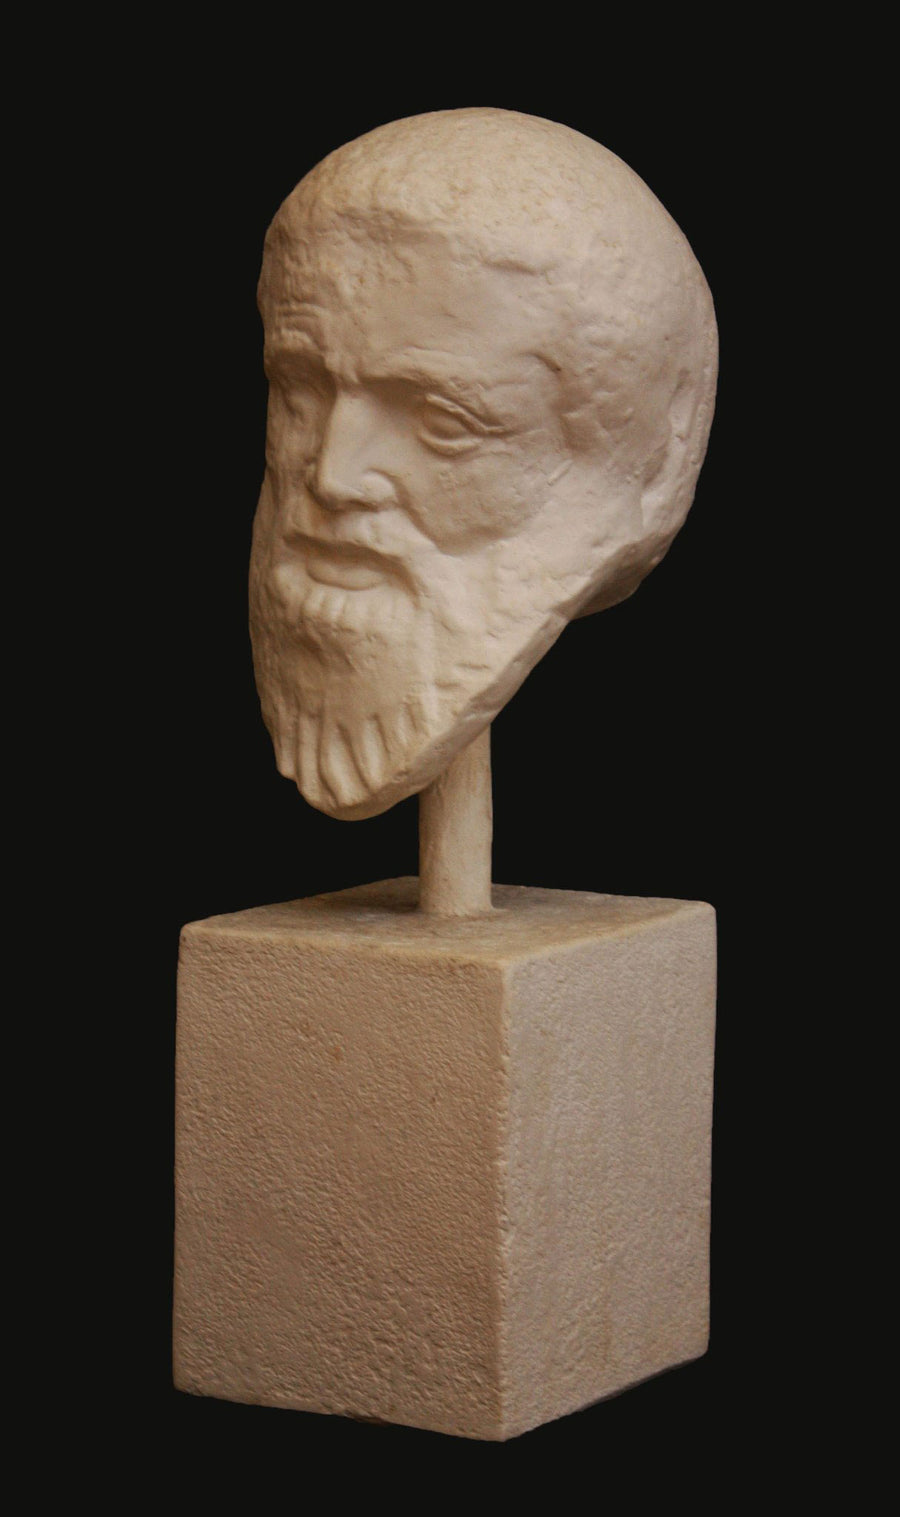 photo with black background of plaster cast of male bust attached to a square base with a pole